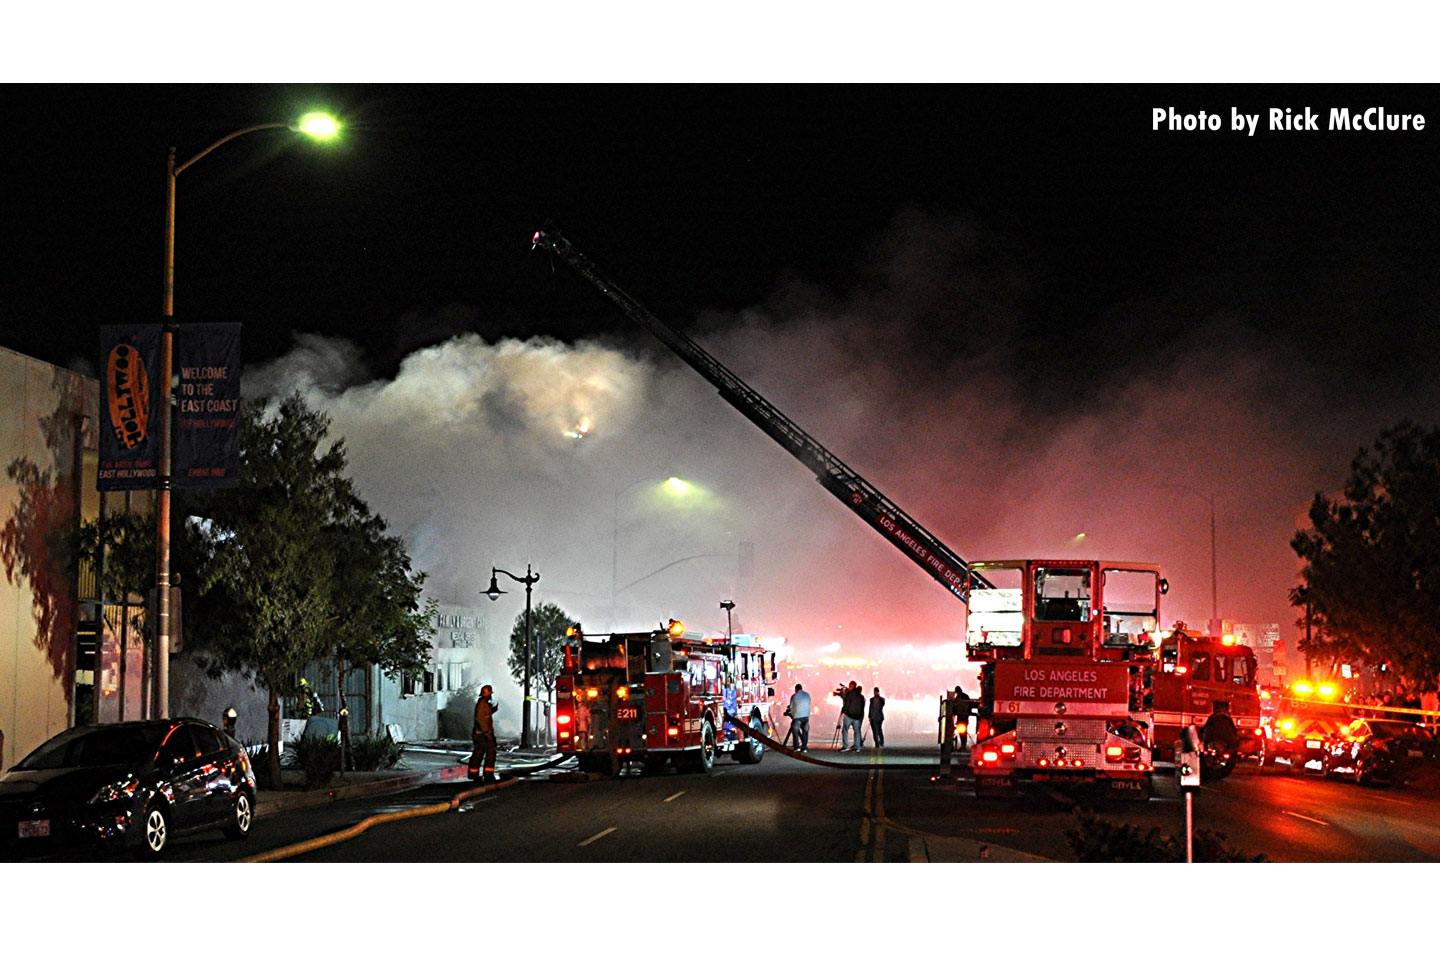 A view of aerial operations as firefighters adopted a defensive posture at this fire scene.